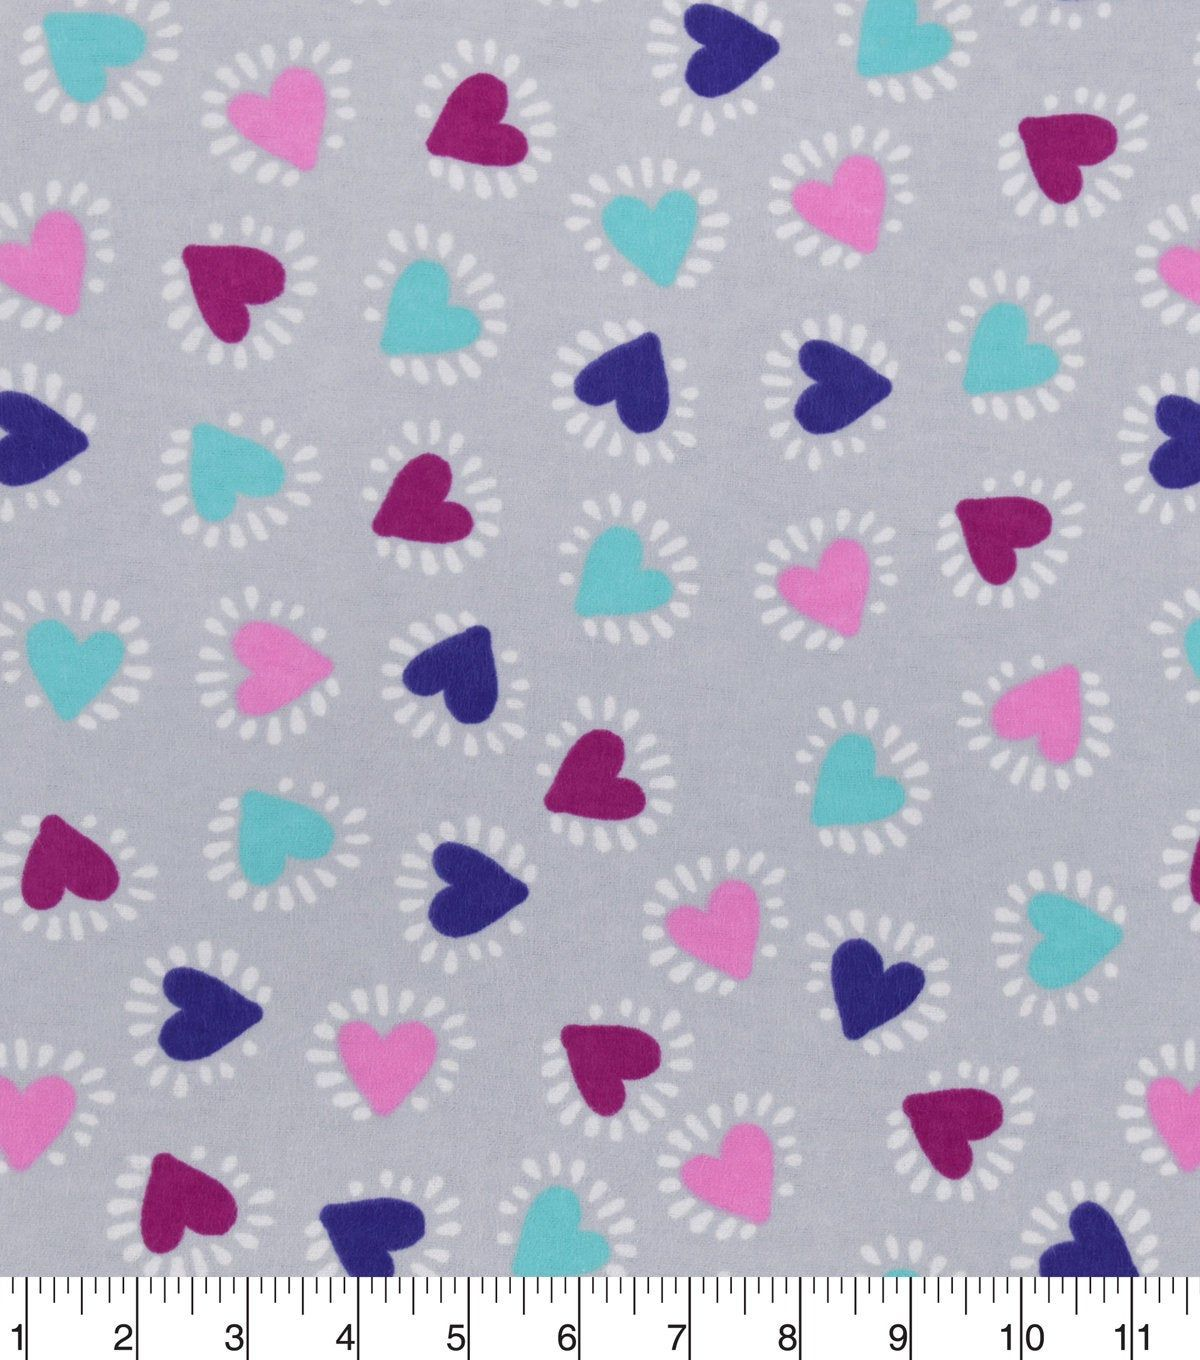 Heart Bursts Fabric By The Yard 100 Cotton Flannel Fabric Only Additional Length Options Available Cotton Flannel Fabric Paper Crafts